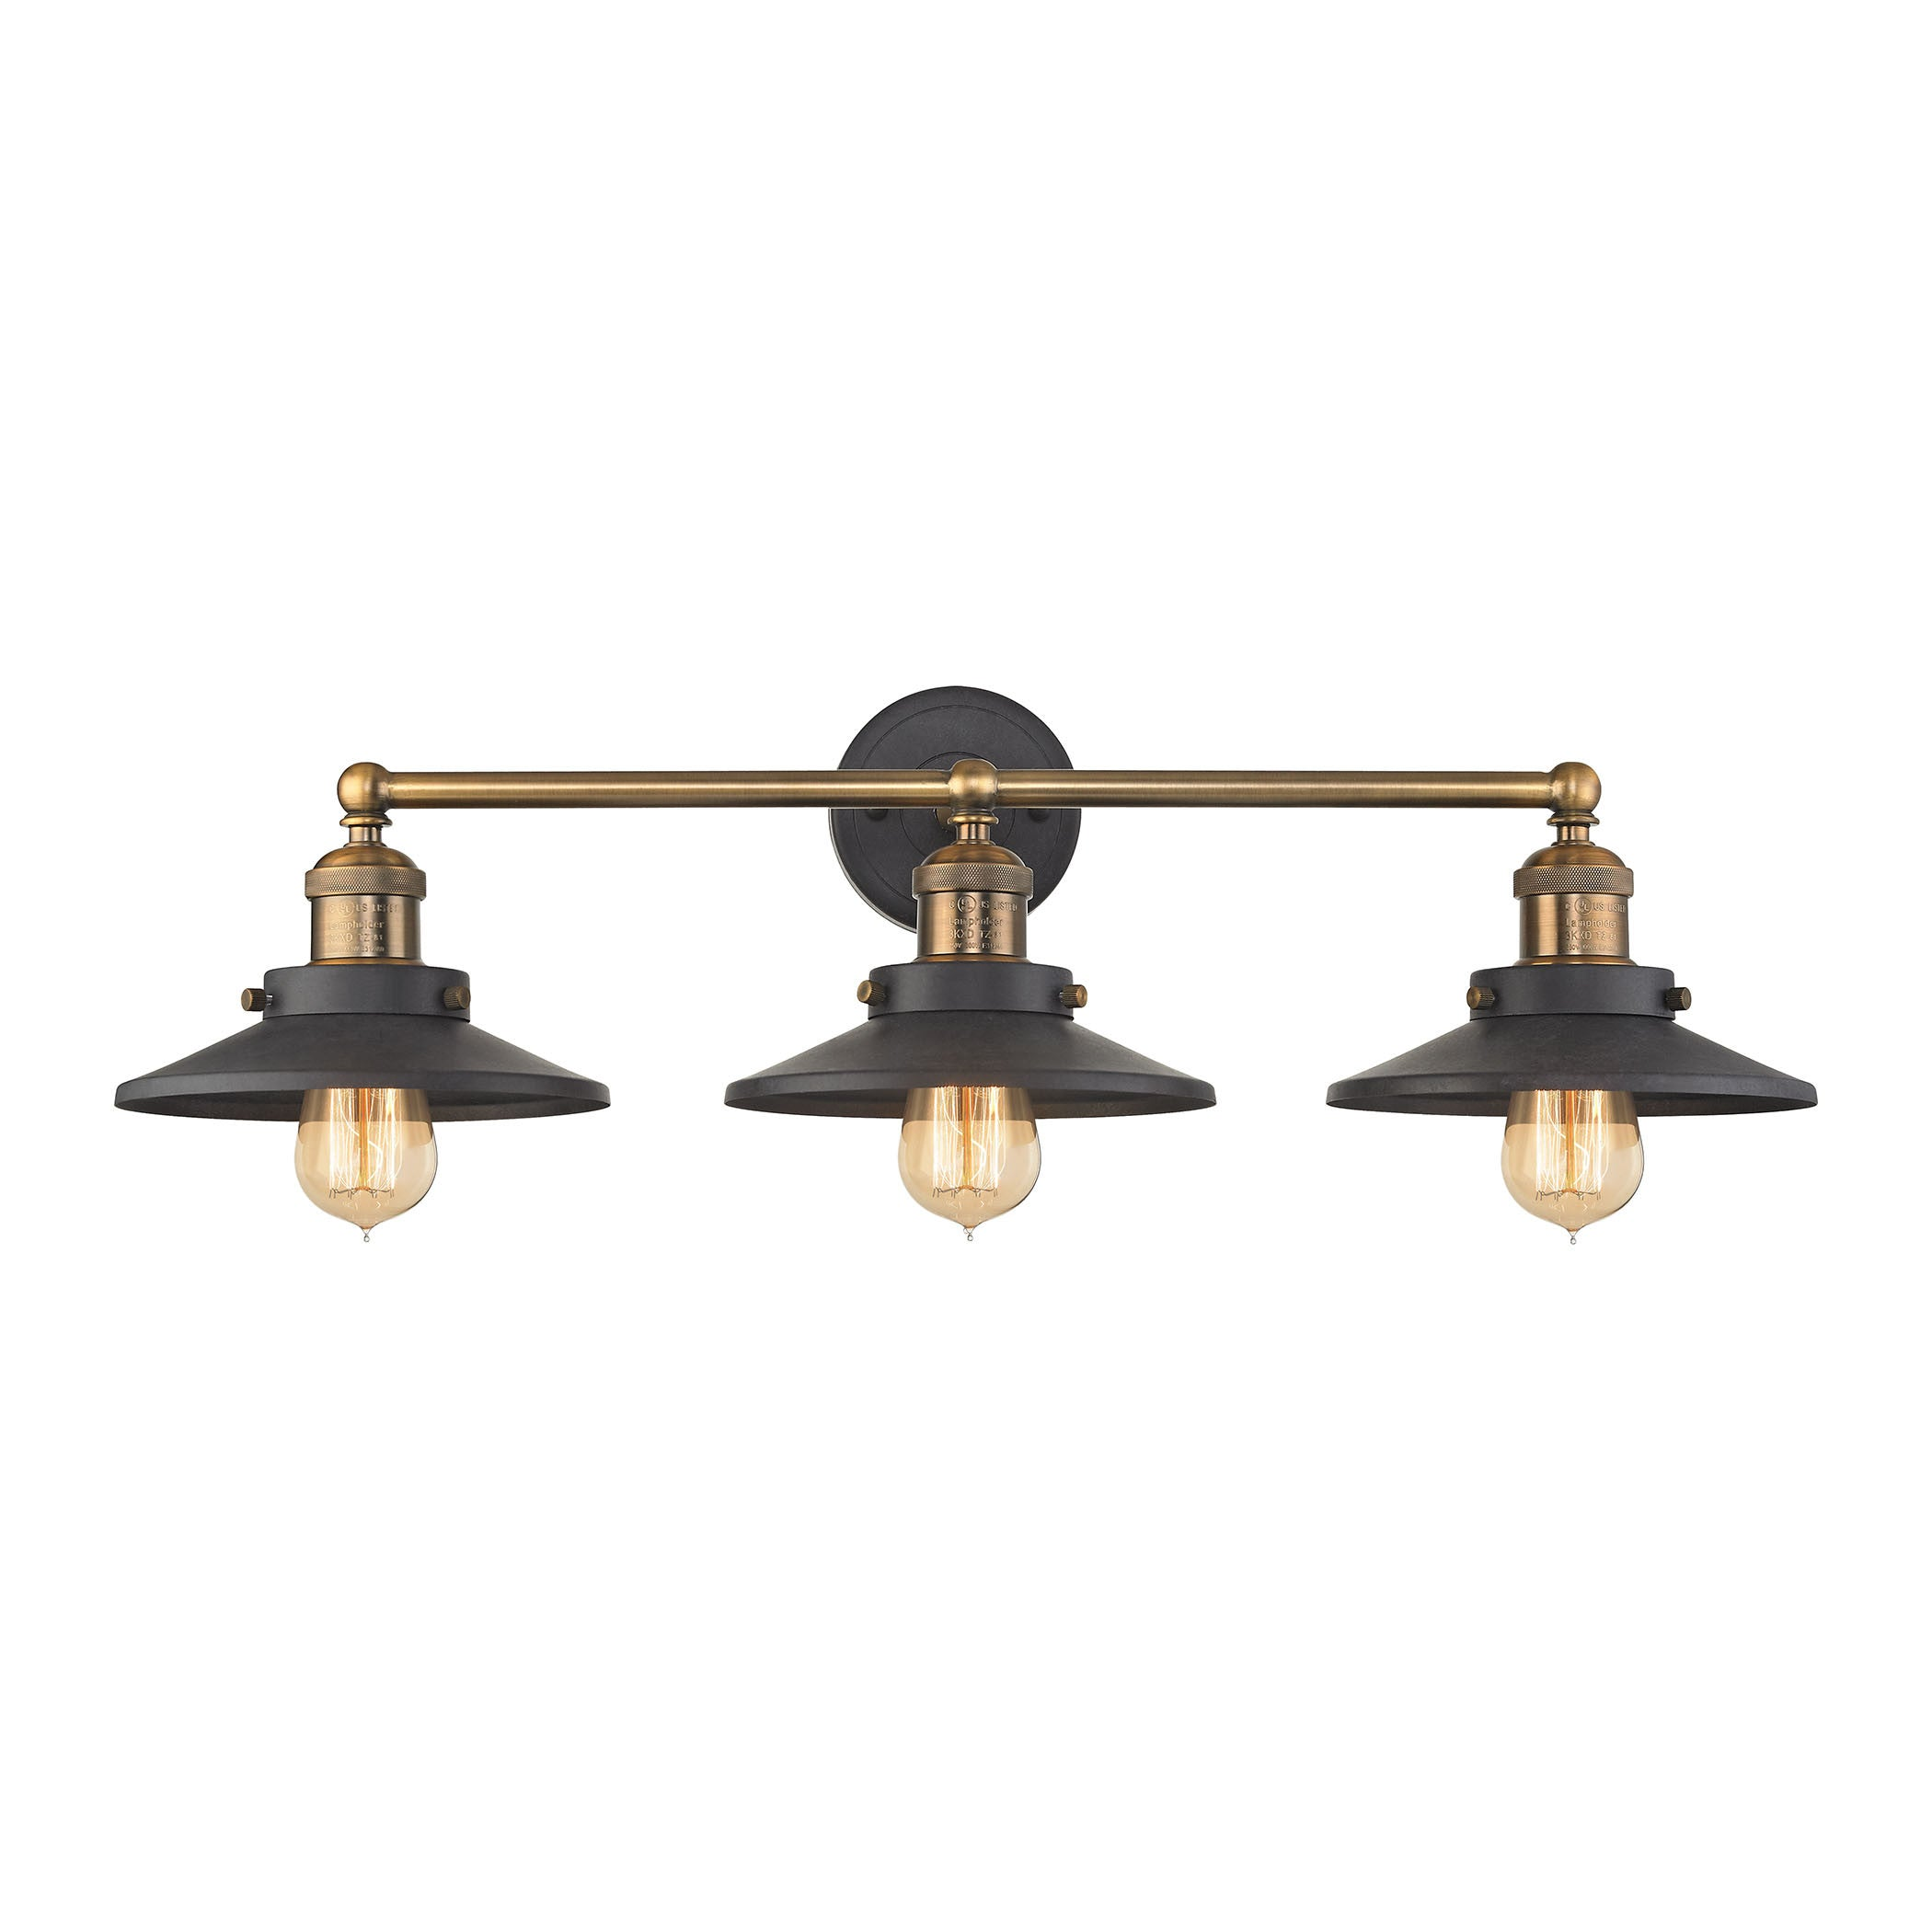 English Pub 3 Light Vanity in Tarnish Graphite with Antique Brass Finish, by ELK Lighting, 67182/3